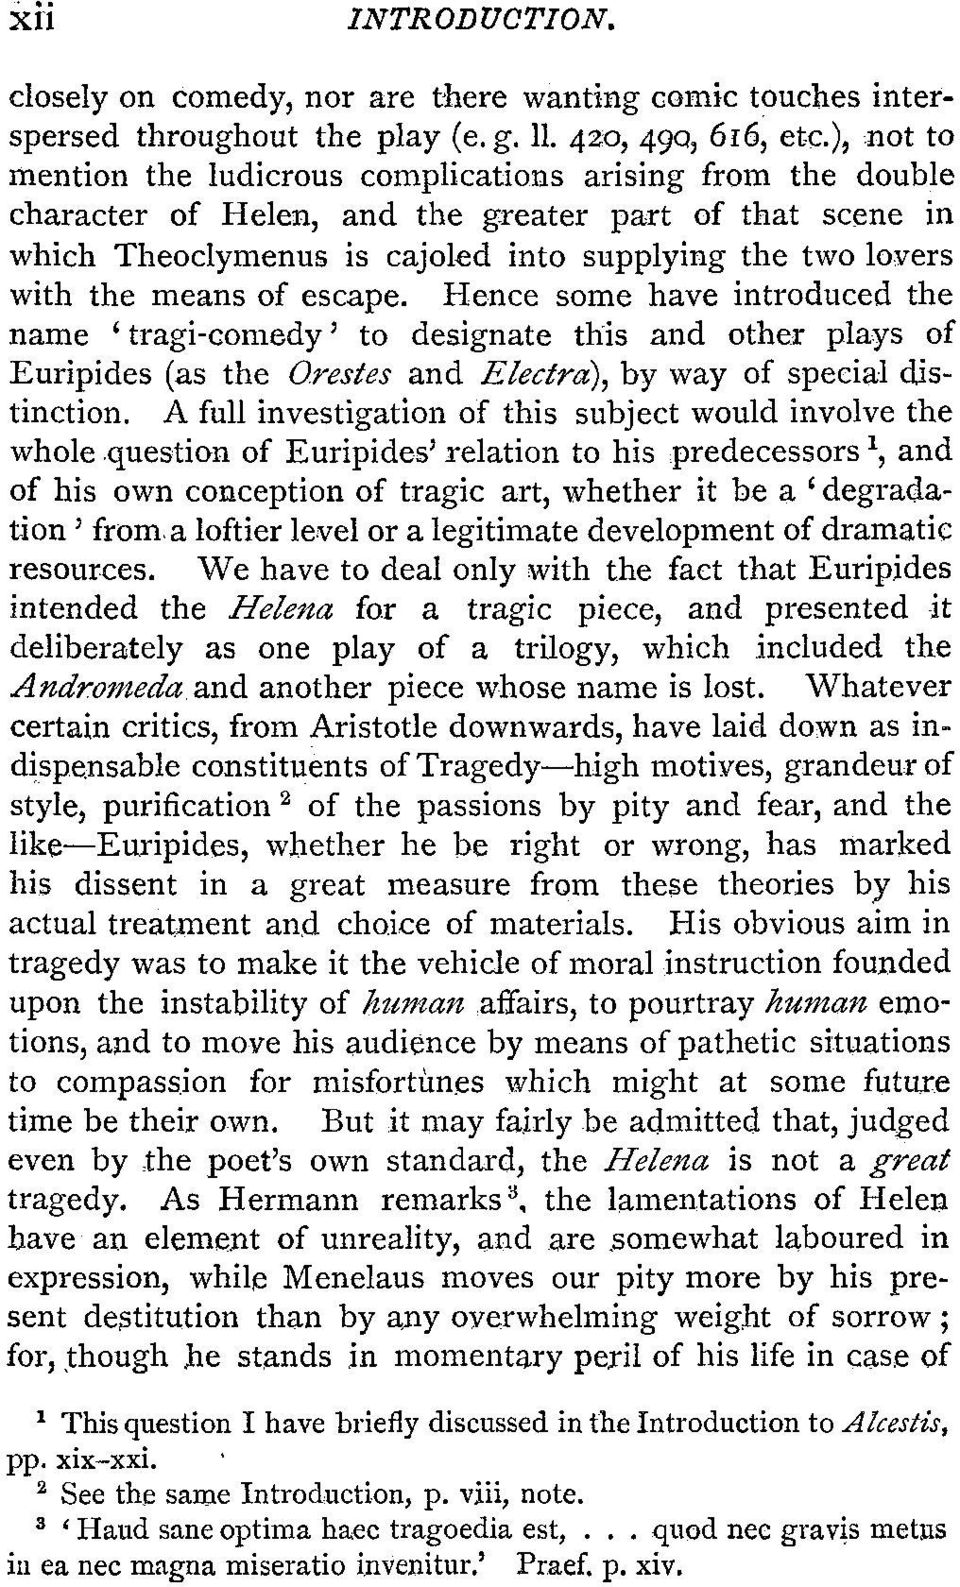 means of escape. Hence some have introduced the name ' tragi-comedy' to designate this and other plays of Euripides (as the Orestes and Electro), by way of special distinction.